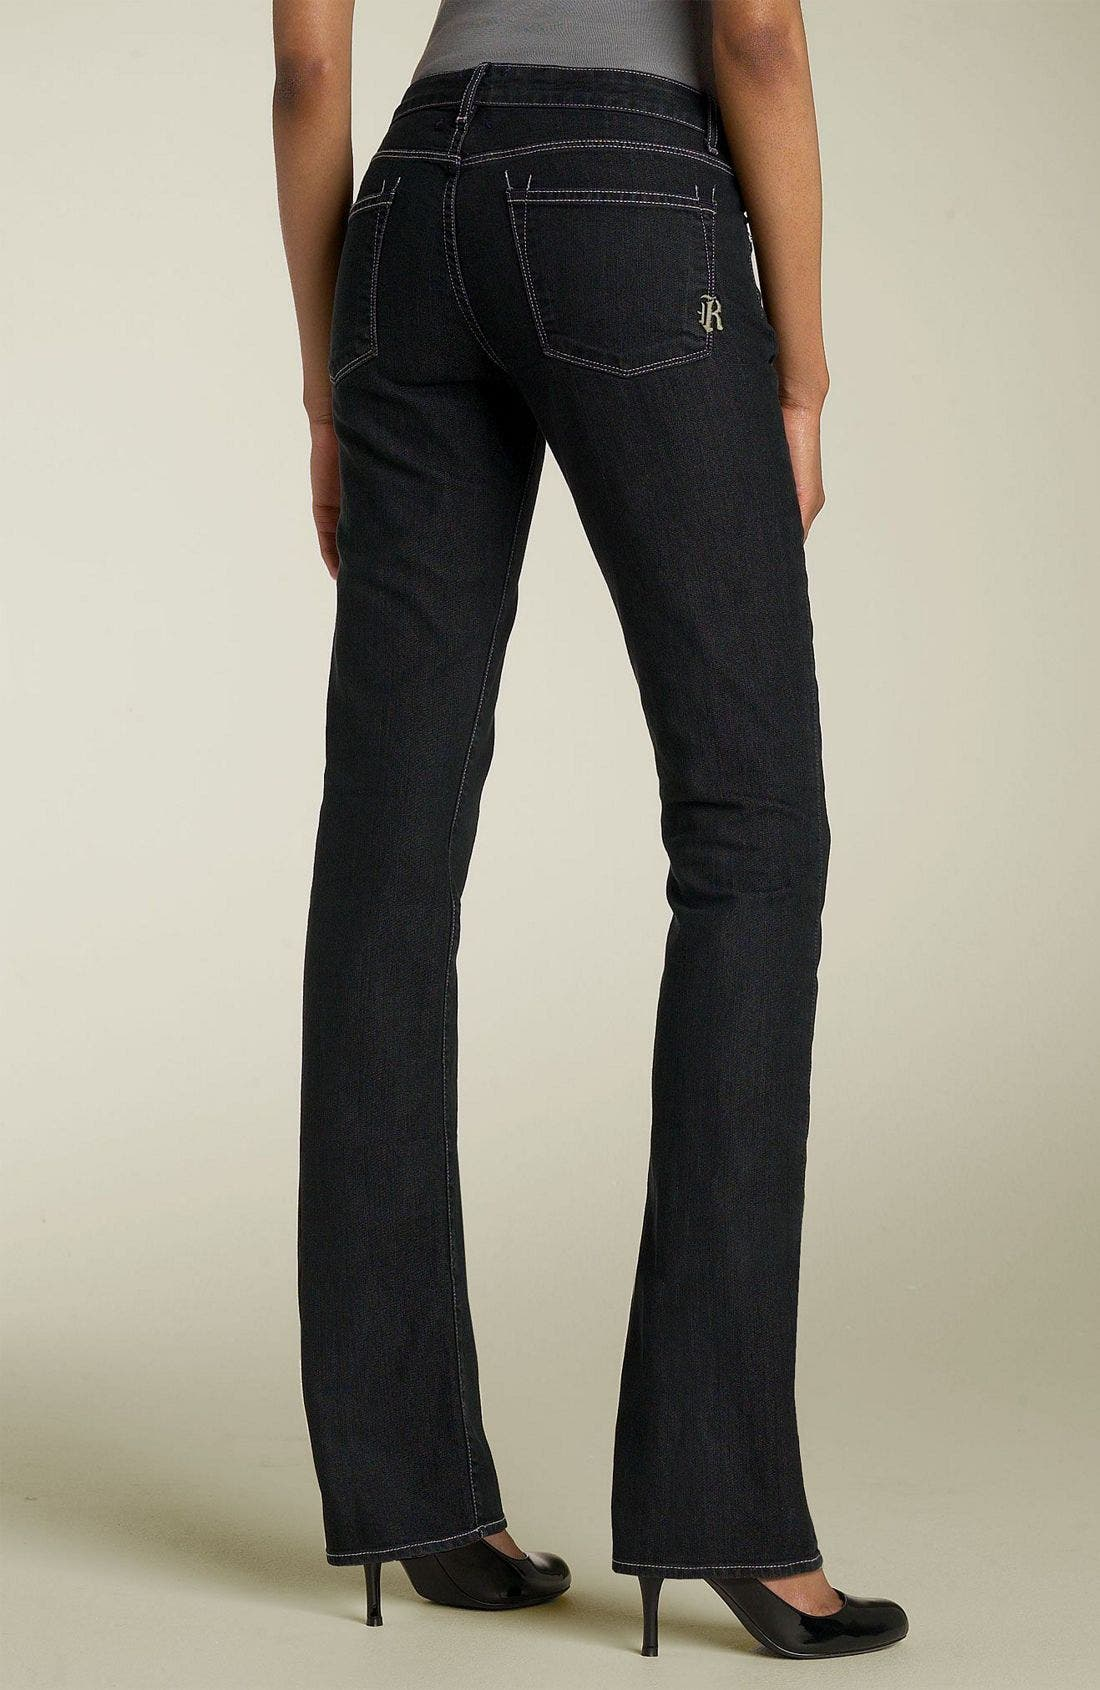 RICH & SKINNY 'Sleek' Straight Leg Stretch Jeans, Main, color, 001